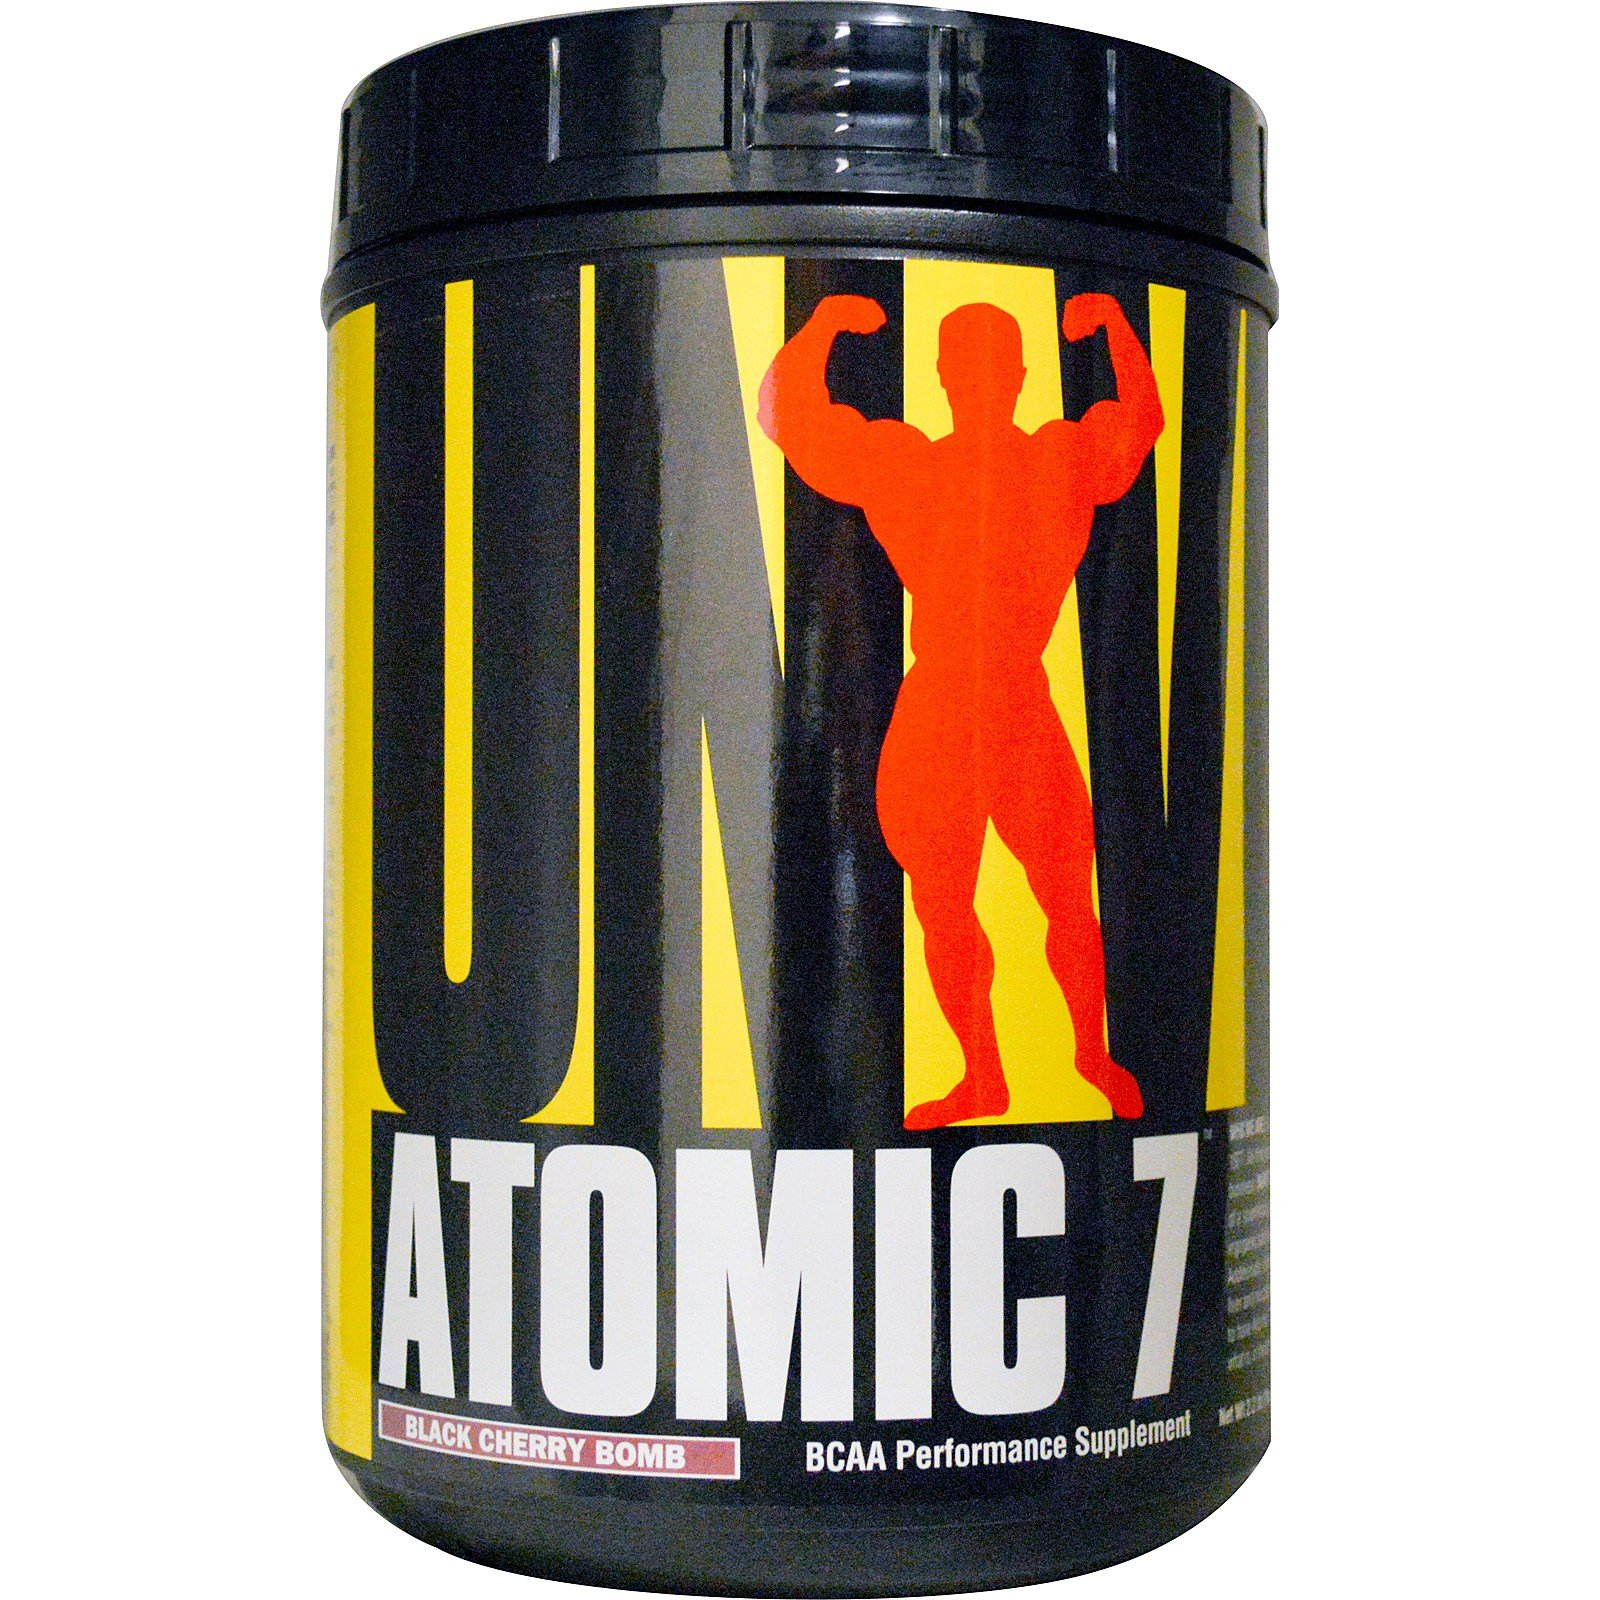 Universal Nutrition, Atomic 7, BCAA Performance Supplement, Black Cherry Bomb, 2.2 lb (1 kg) - 2pc